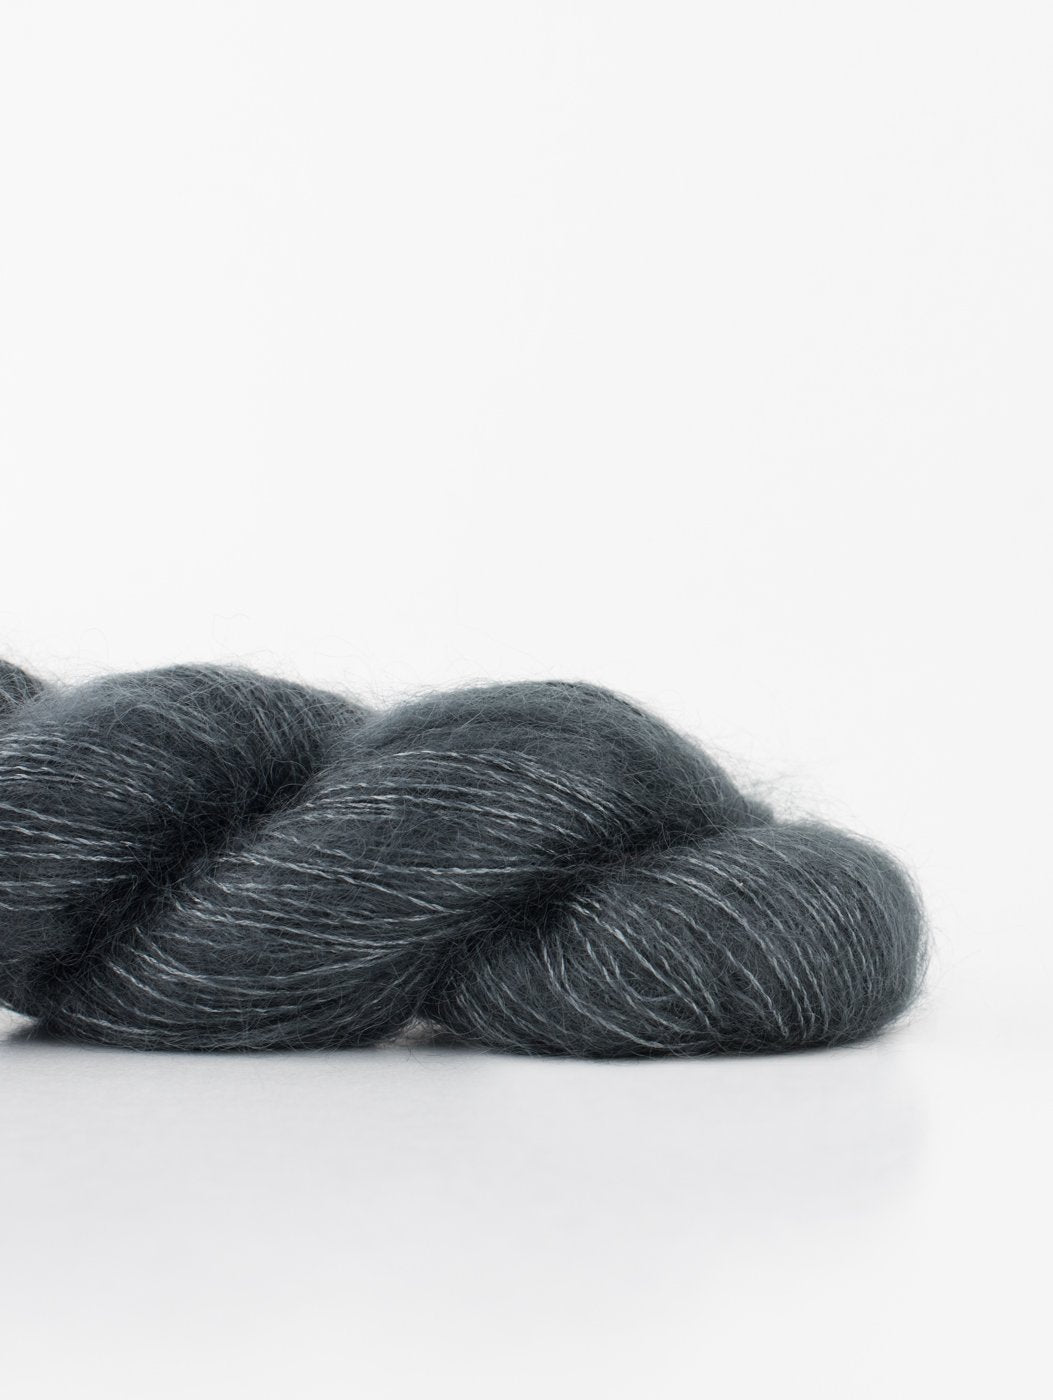 SHIBUI SILK CLOUD TAR